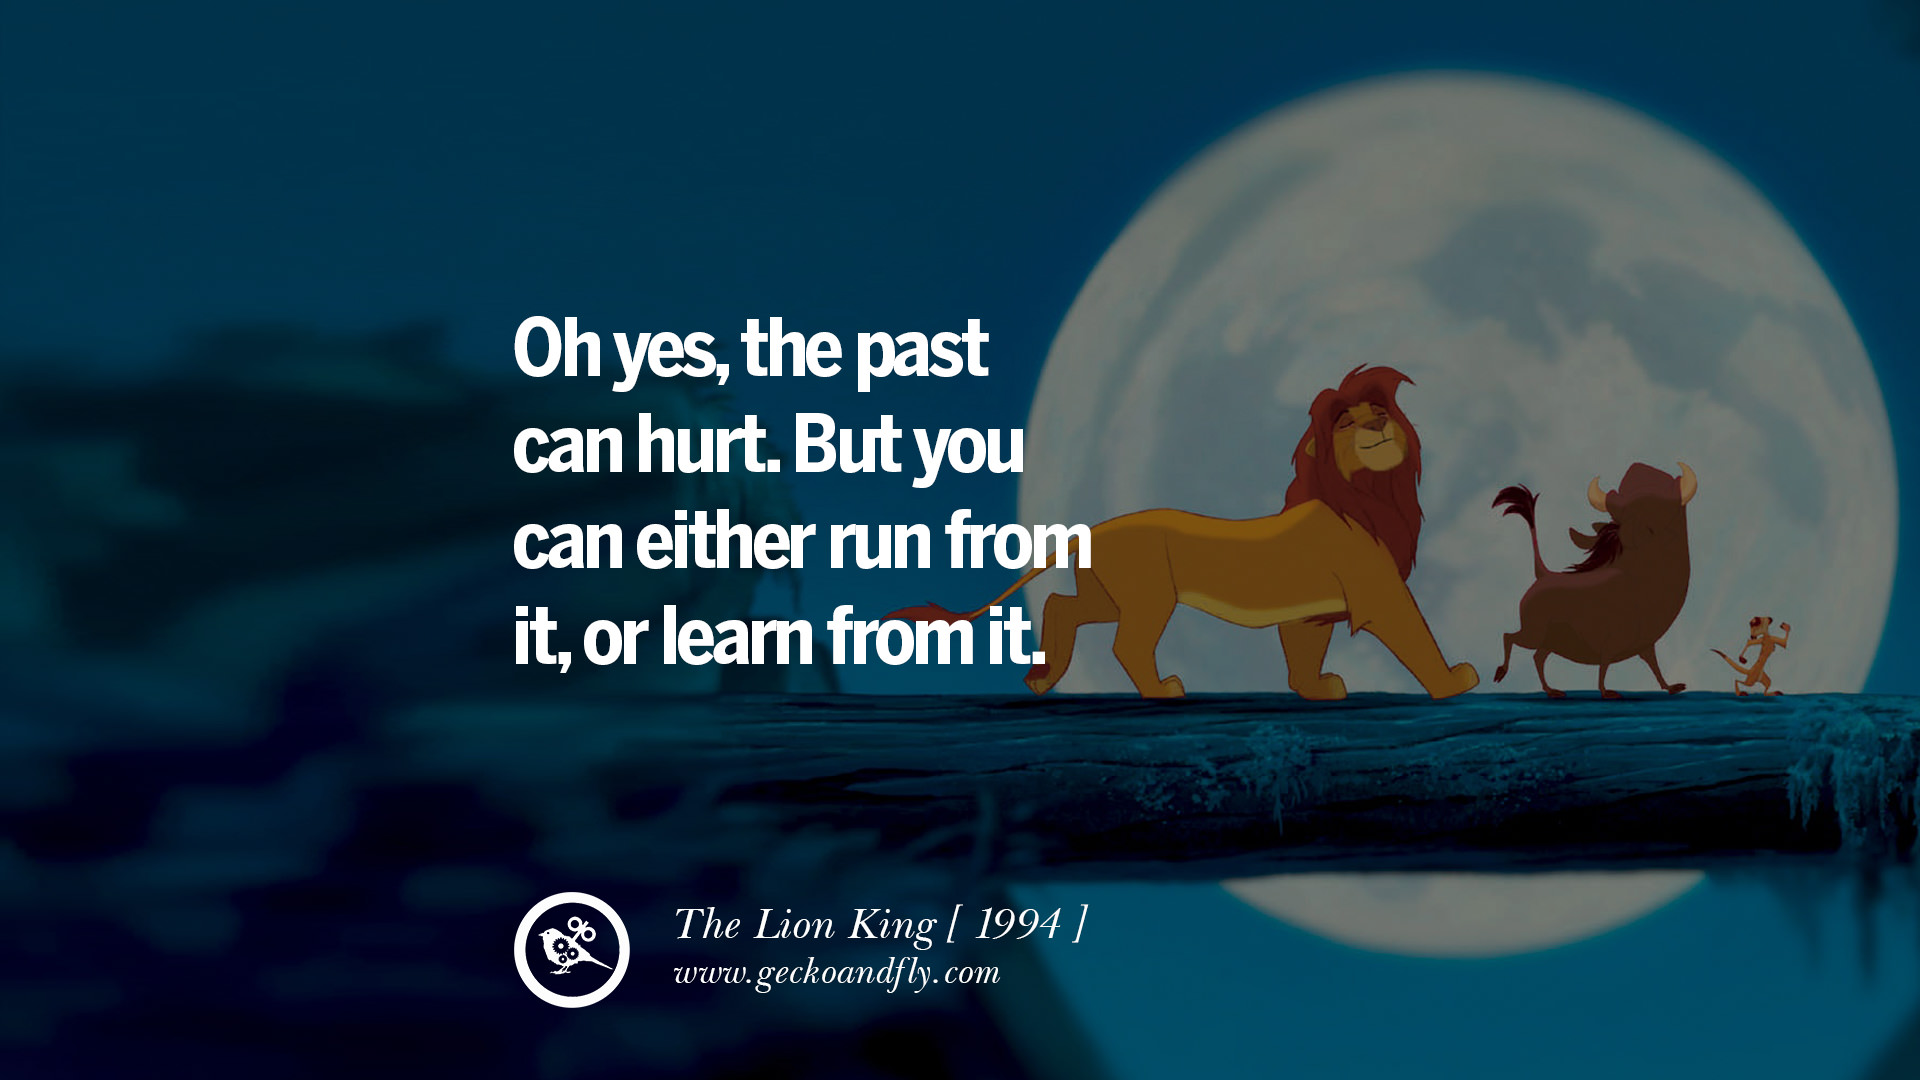 Disney Movie Quotes About Love The Lion King Oh yes